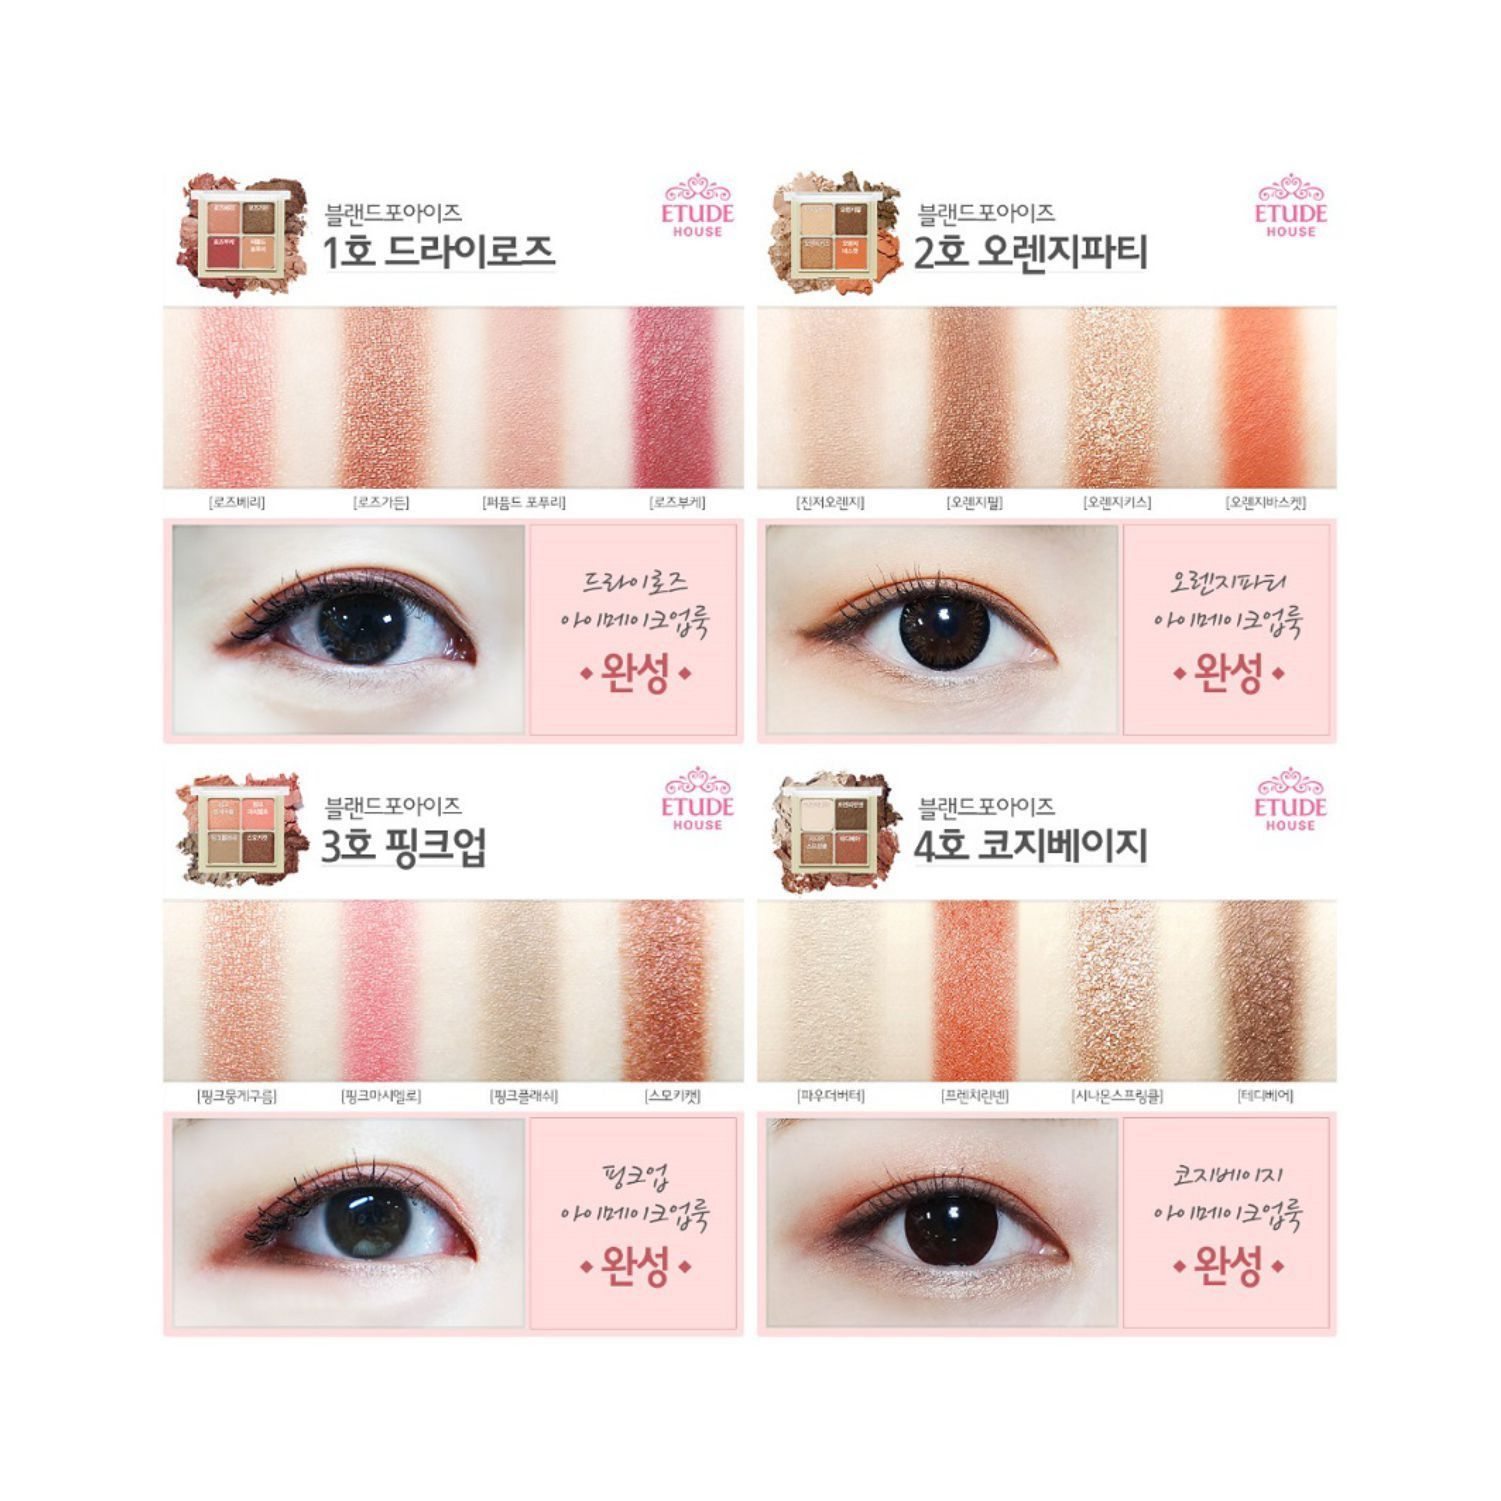 Etude house blend for 4 eyes korean makeup tutorials pinterest etude house blend for 4 eyes baditri Image collections